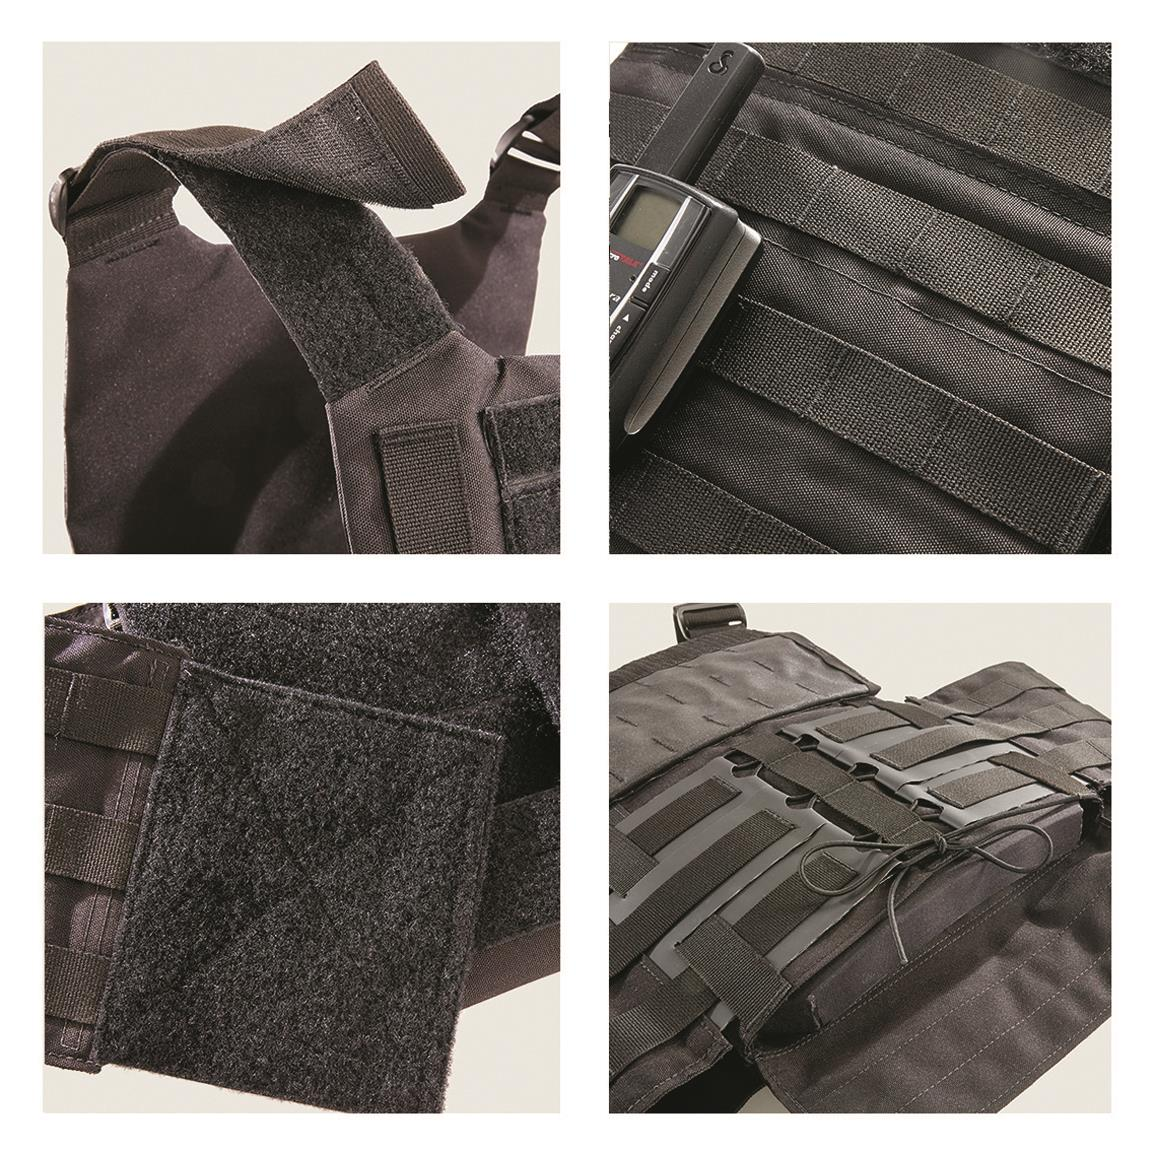 For a snug, custom fit, Armor Express equipped the Hard Bal with their Dynamic Cumberbund System.